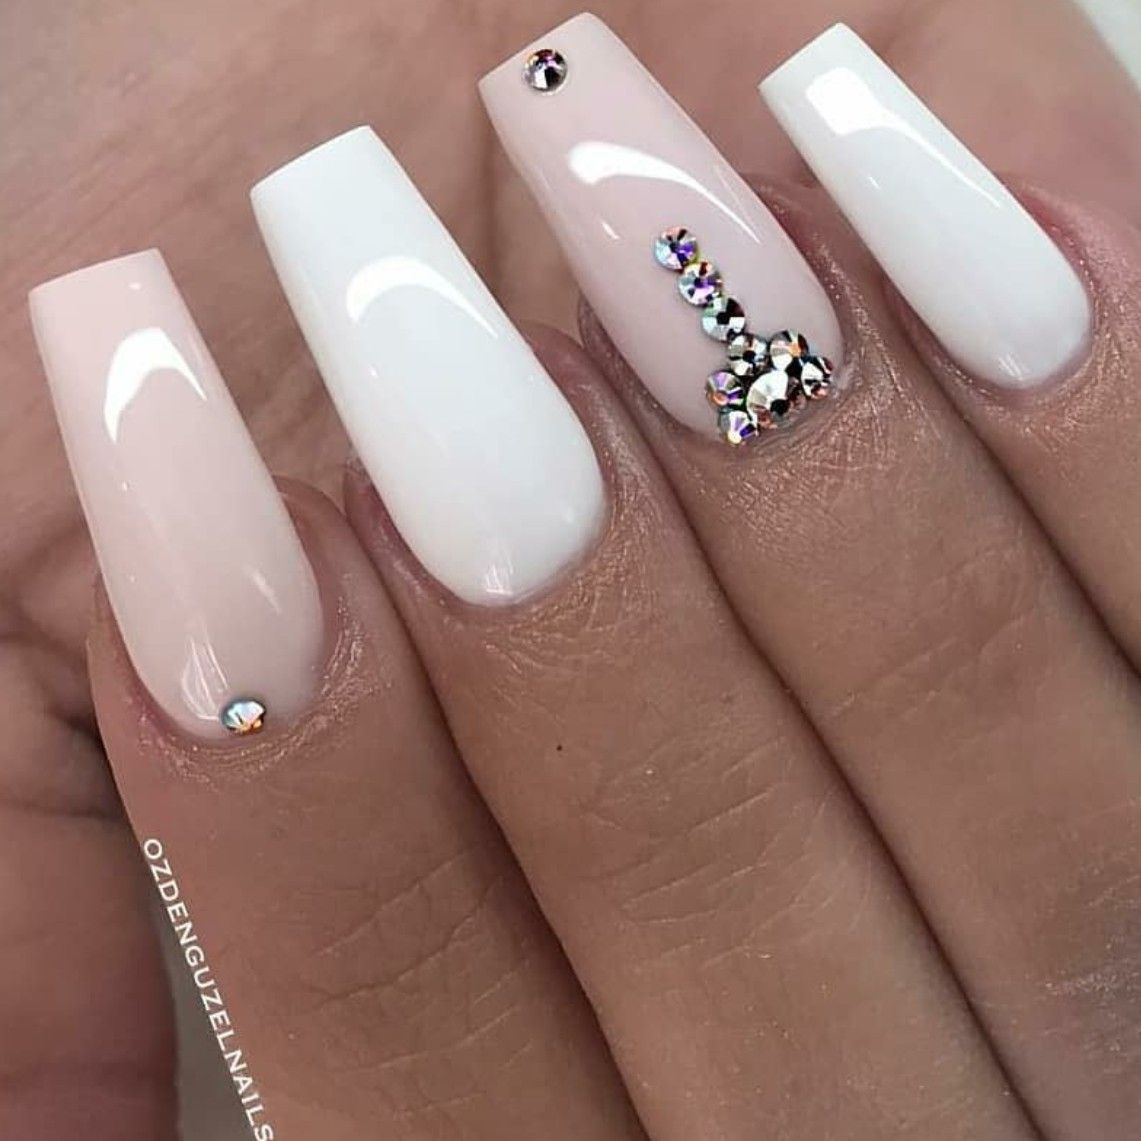 Tapered Square Nails White And Pink Nails Nails With Rhinestones Acrylic Nails Spring Nails Square Nails Square Acrylic Nails Rhinestone Nails